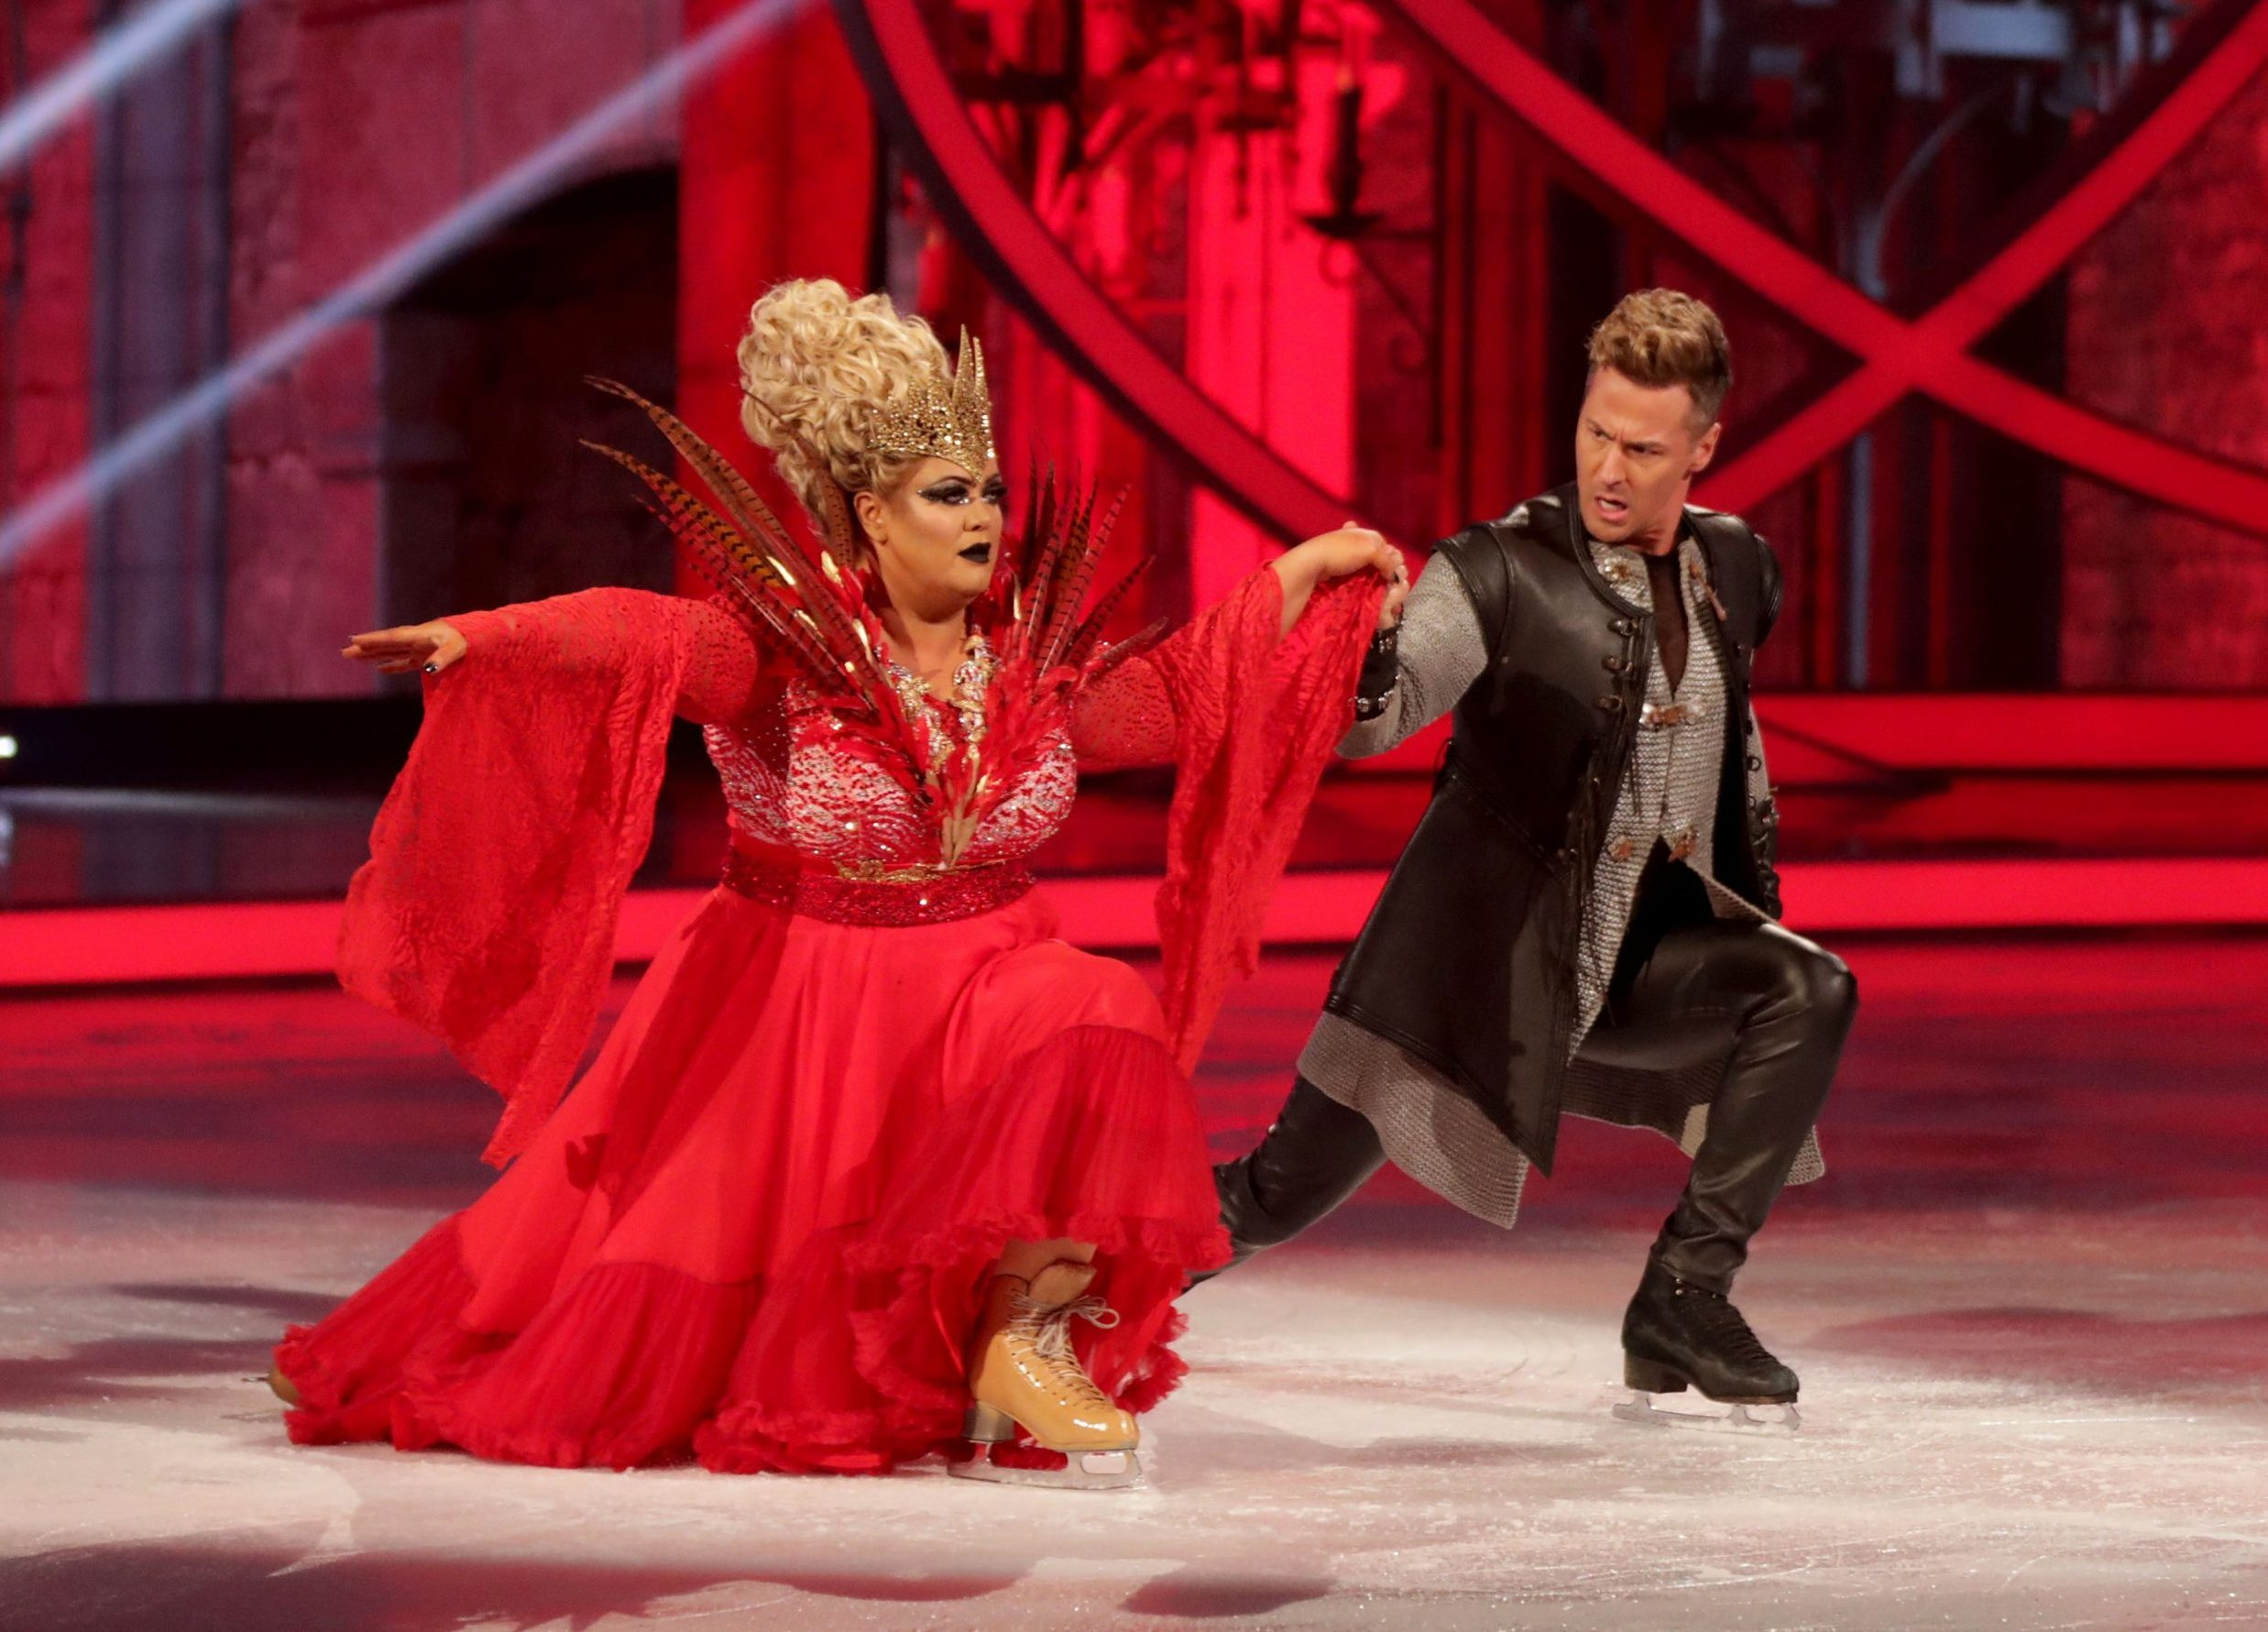 Gemma Collins confirms she'll be back for Dancing On Ice final: 'I wouldn't miss it for the world'